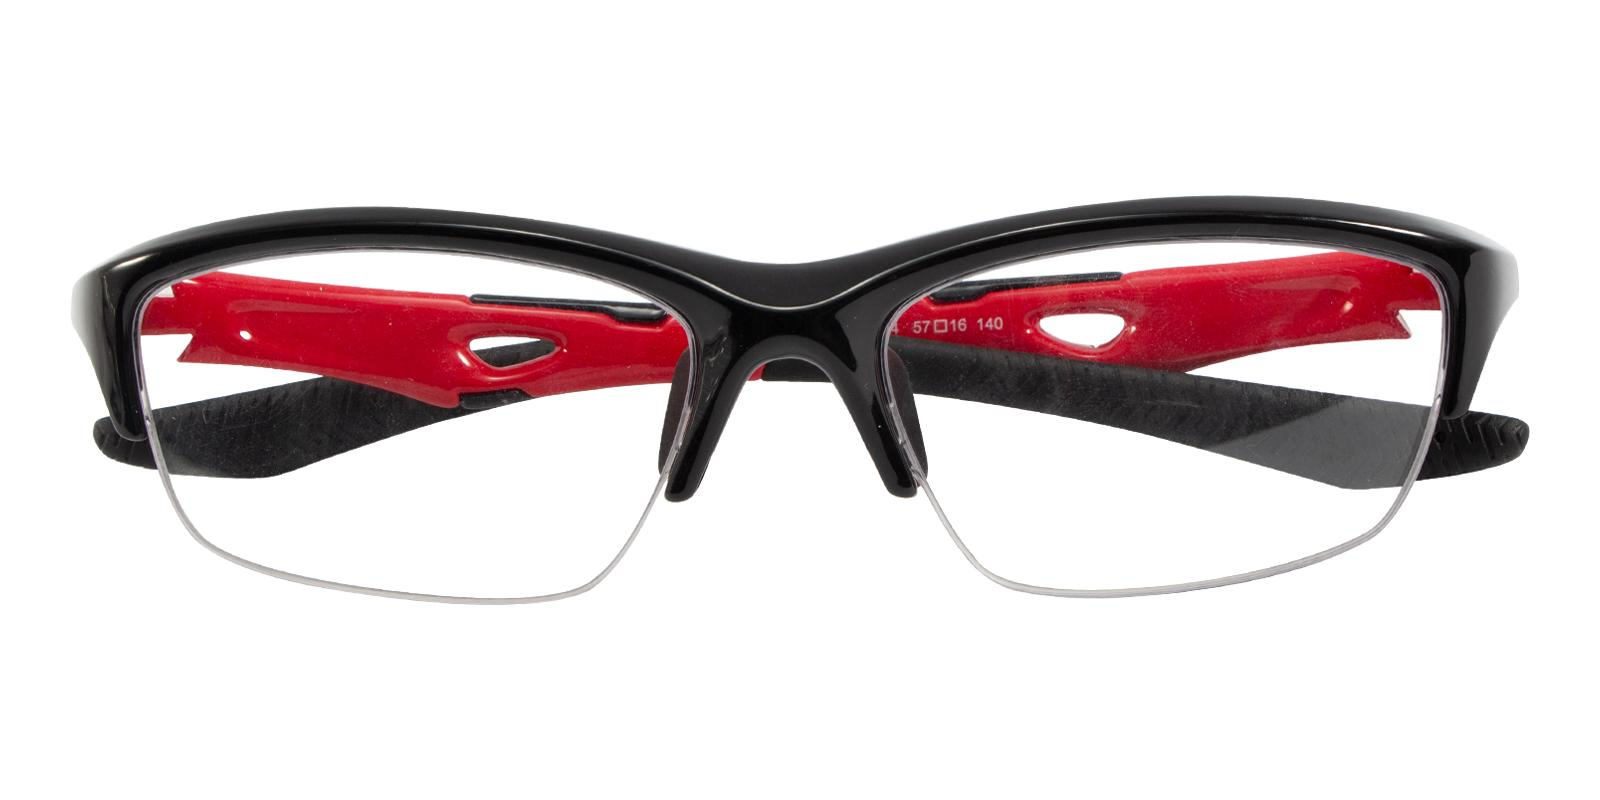 Phoenix Black TR NosePads , SportsGlasses Frames from ABBE Glasses